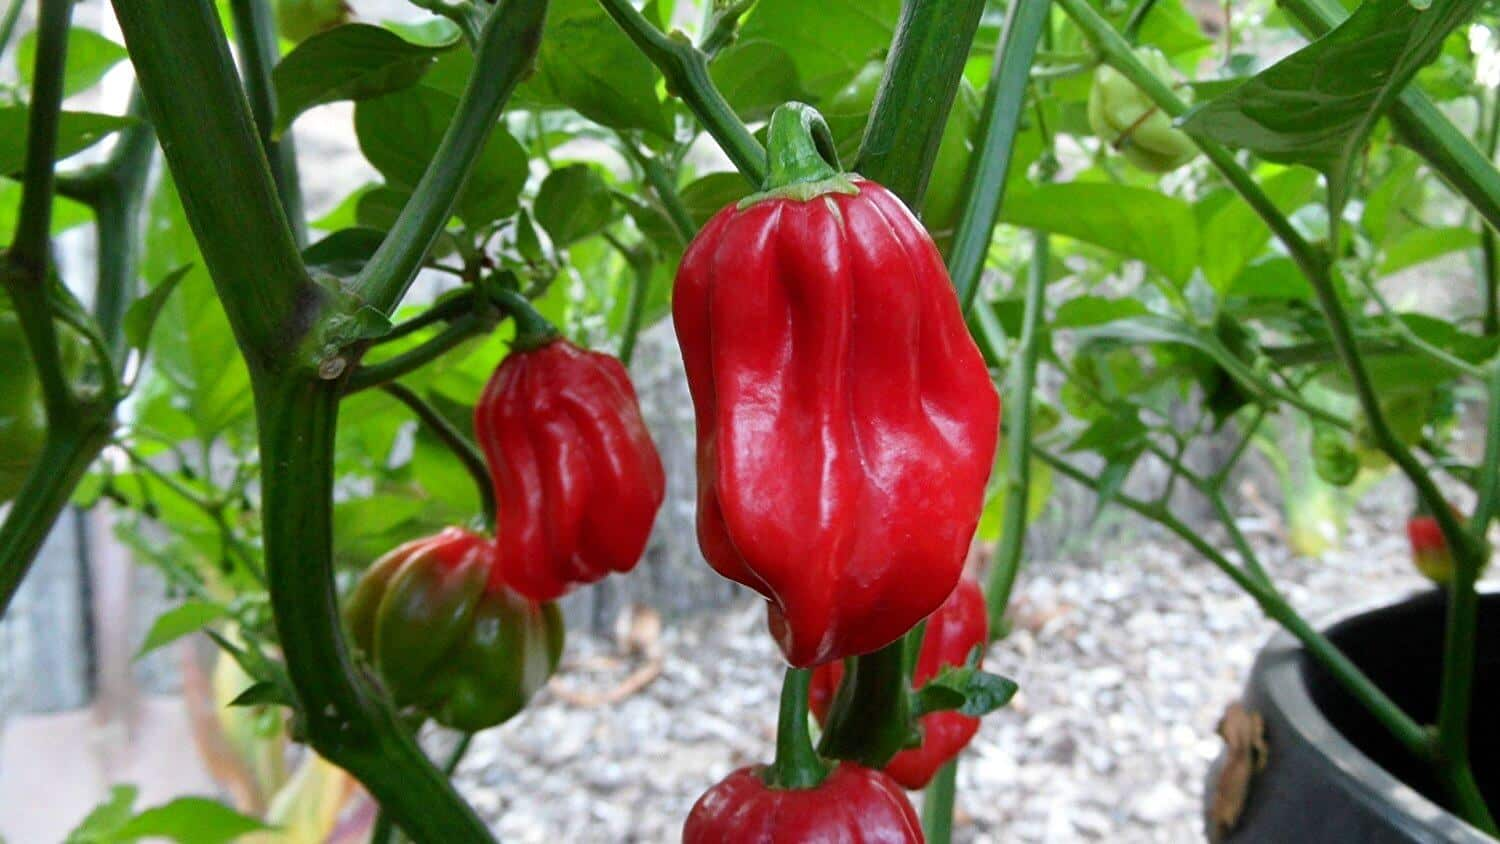 Aji Chombo: The Fiery Panamanian Pepper